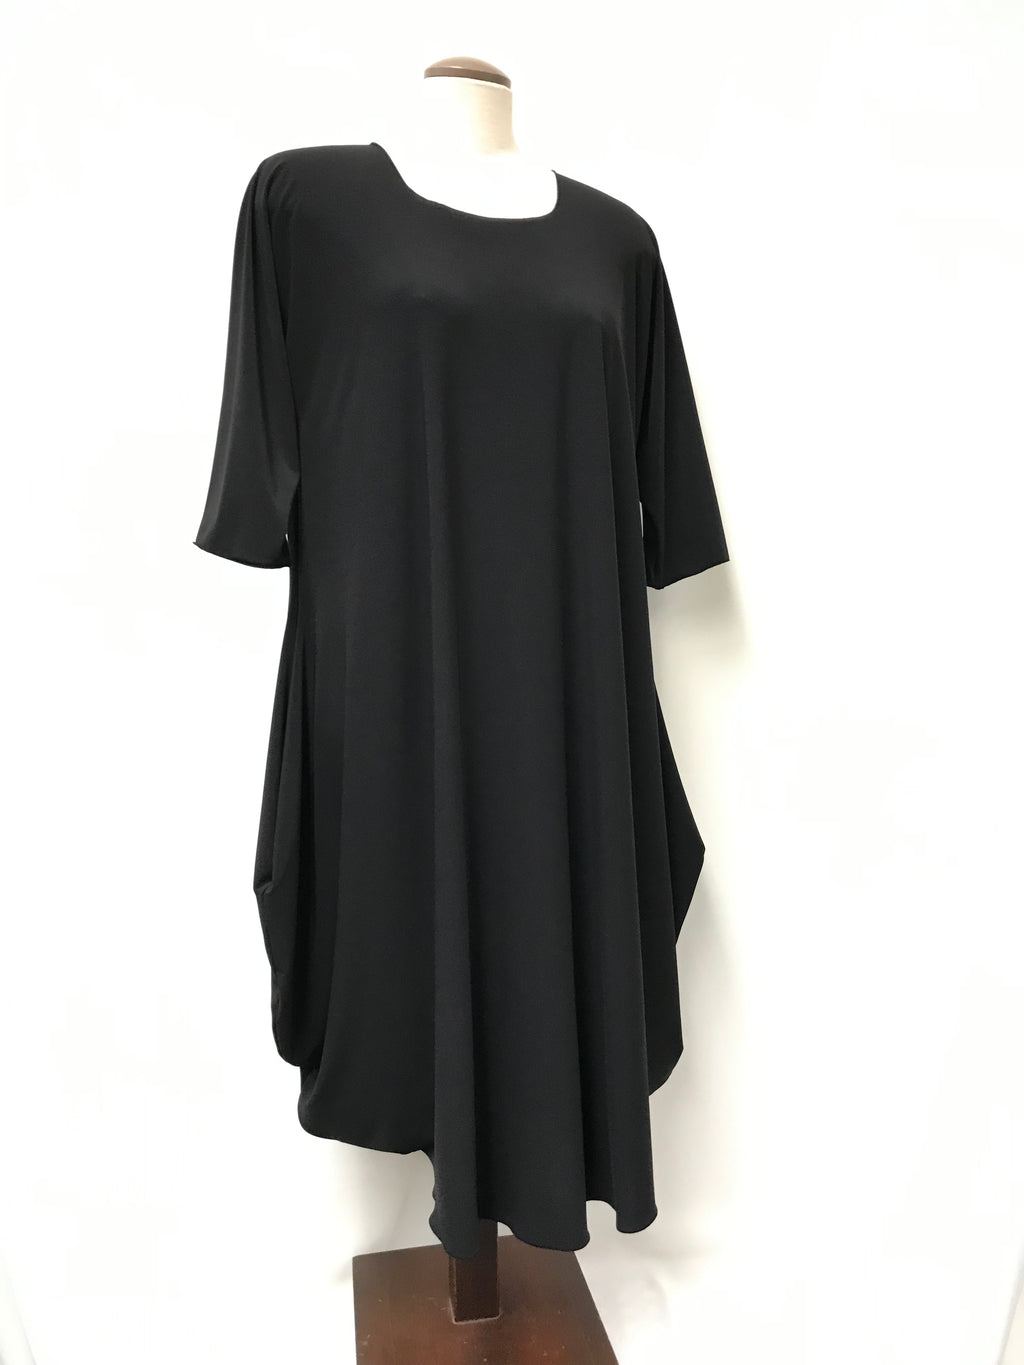 Dress Rounded neckline - 3/4 sleeve - interesting hemline